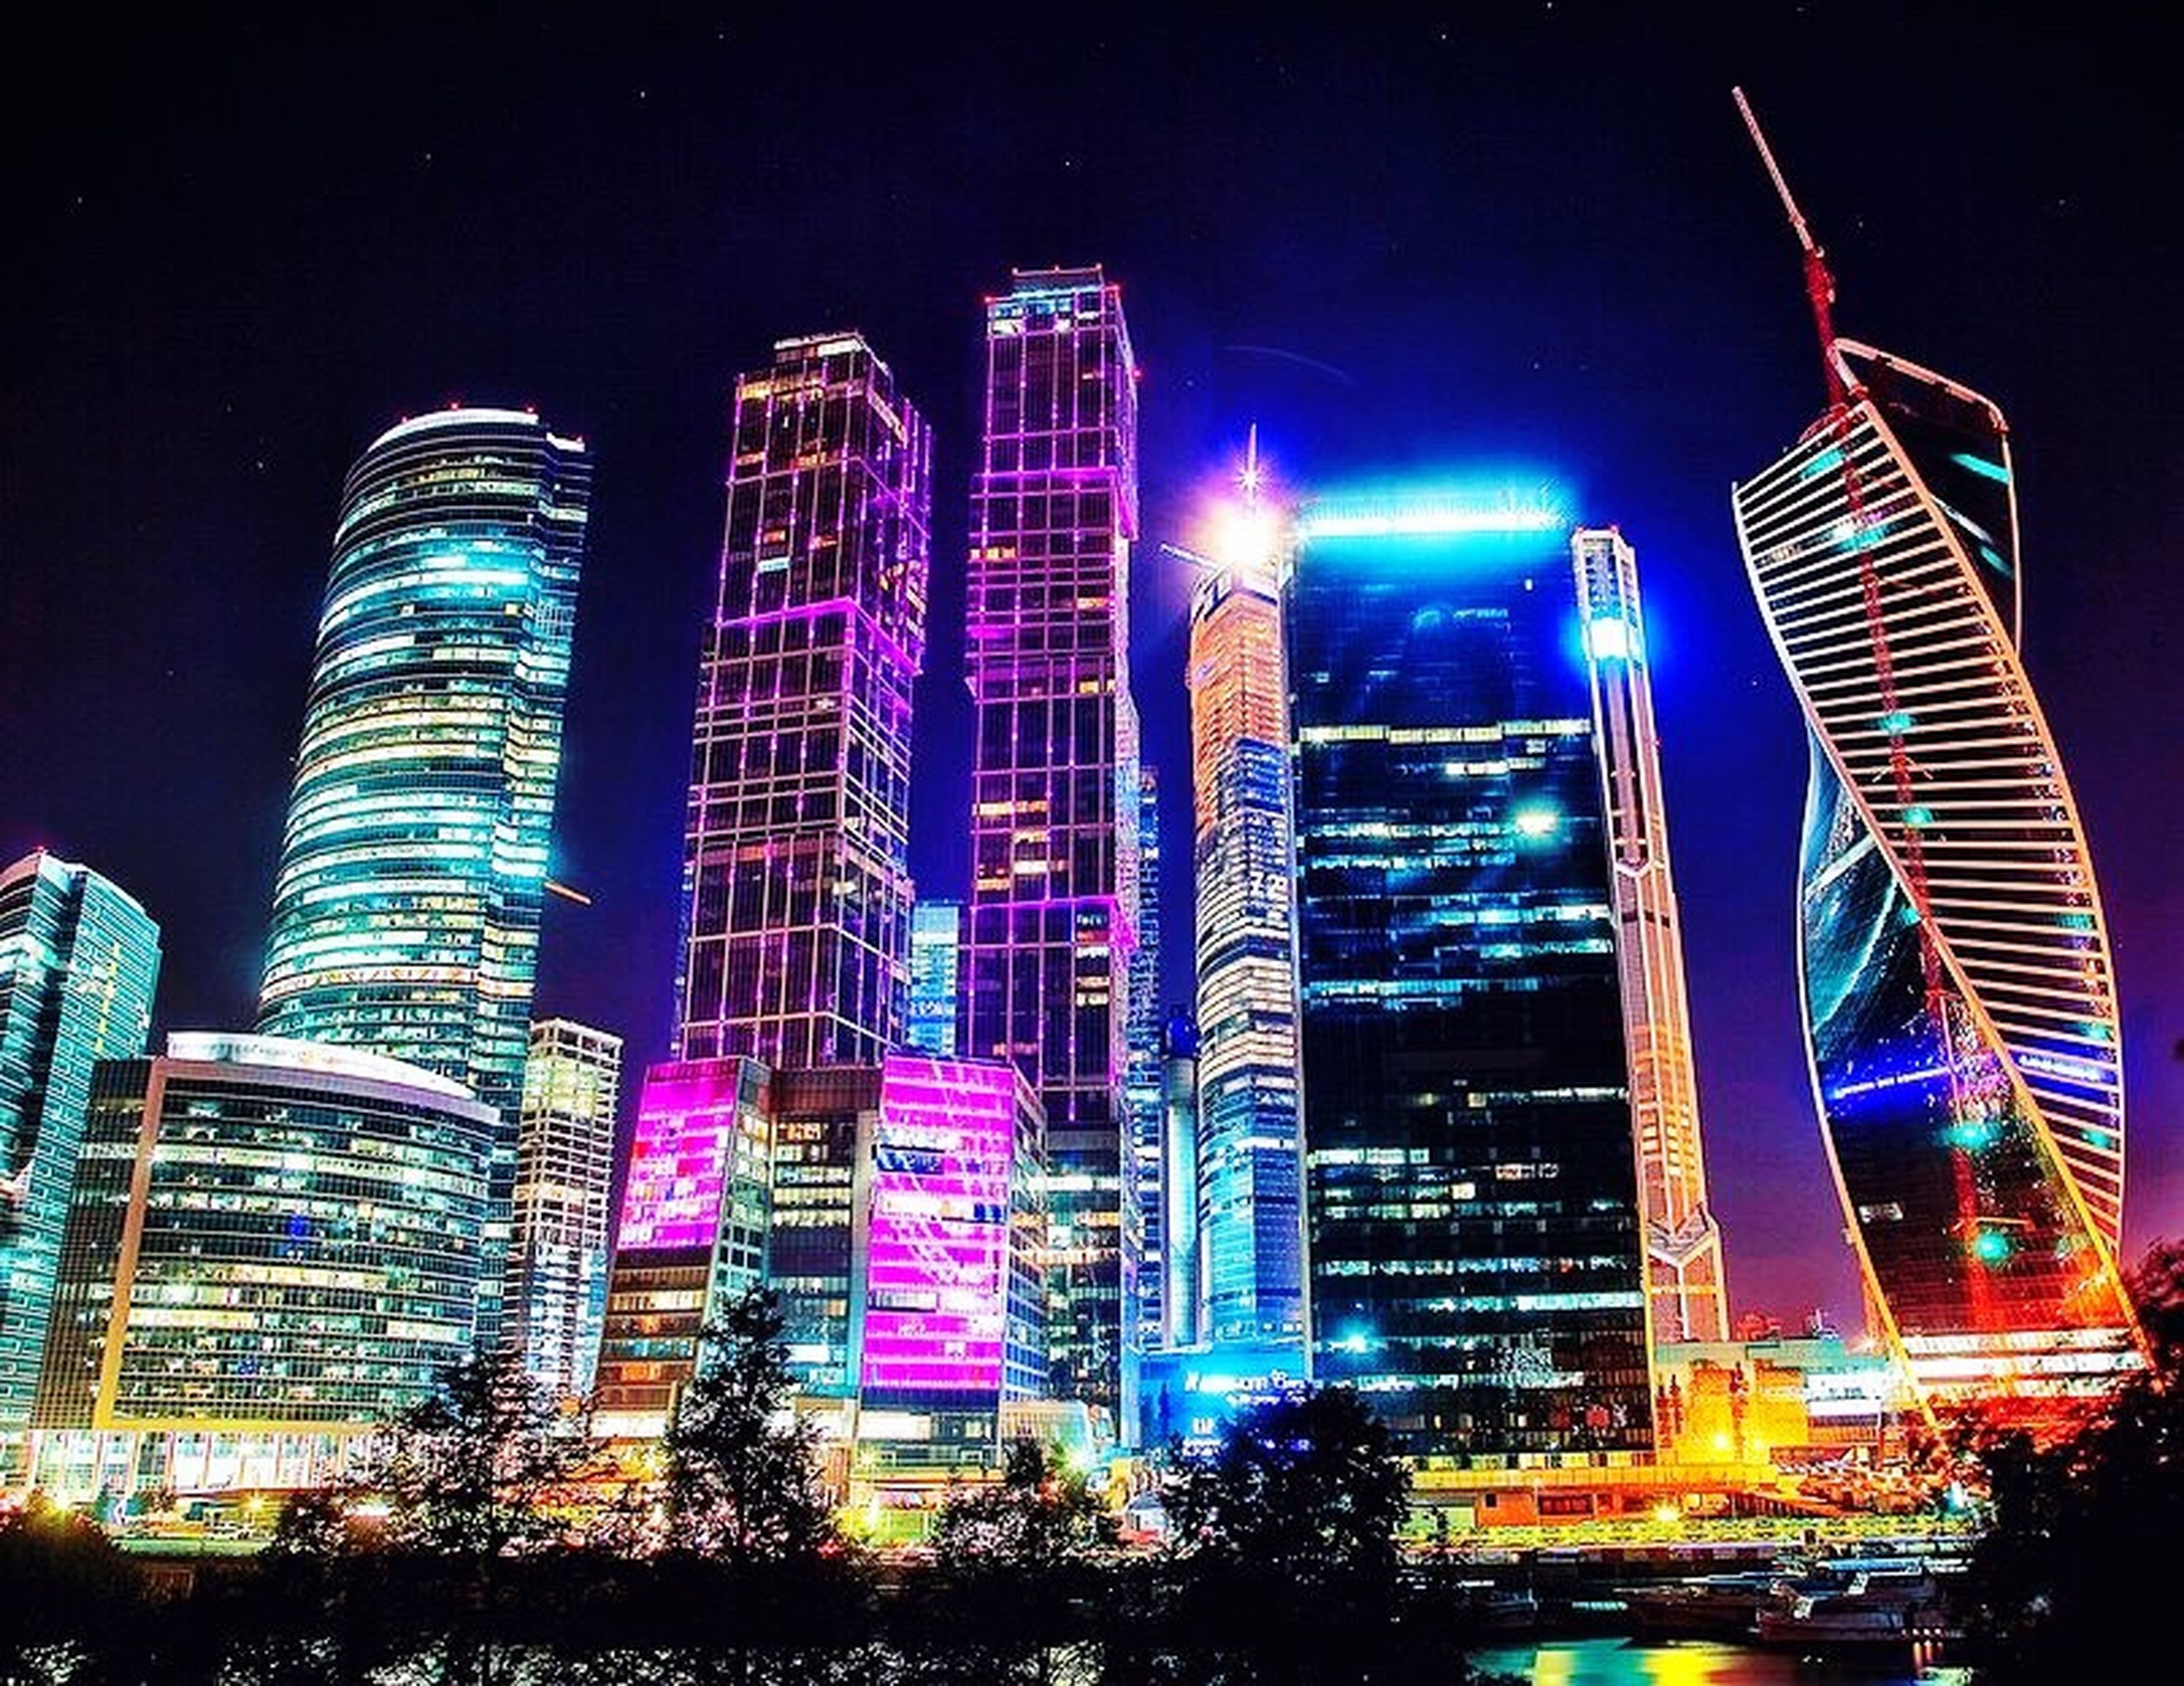 illuminated, night, building exterior, architecture, city, skyscraper, built structure, modern, tall - high, tower, office building, cityscape, capital cities, travel destinations, low angle view, financial district, famous place, sky, city life, travel